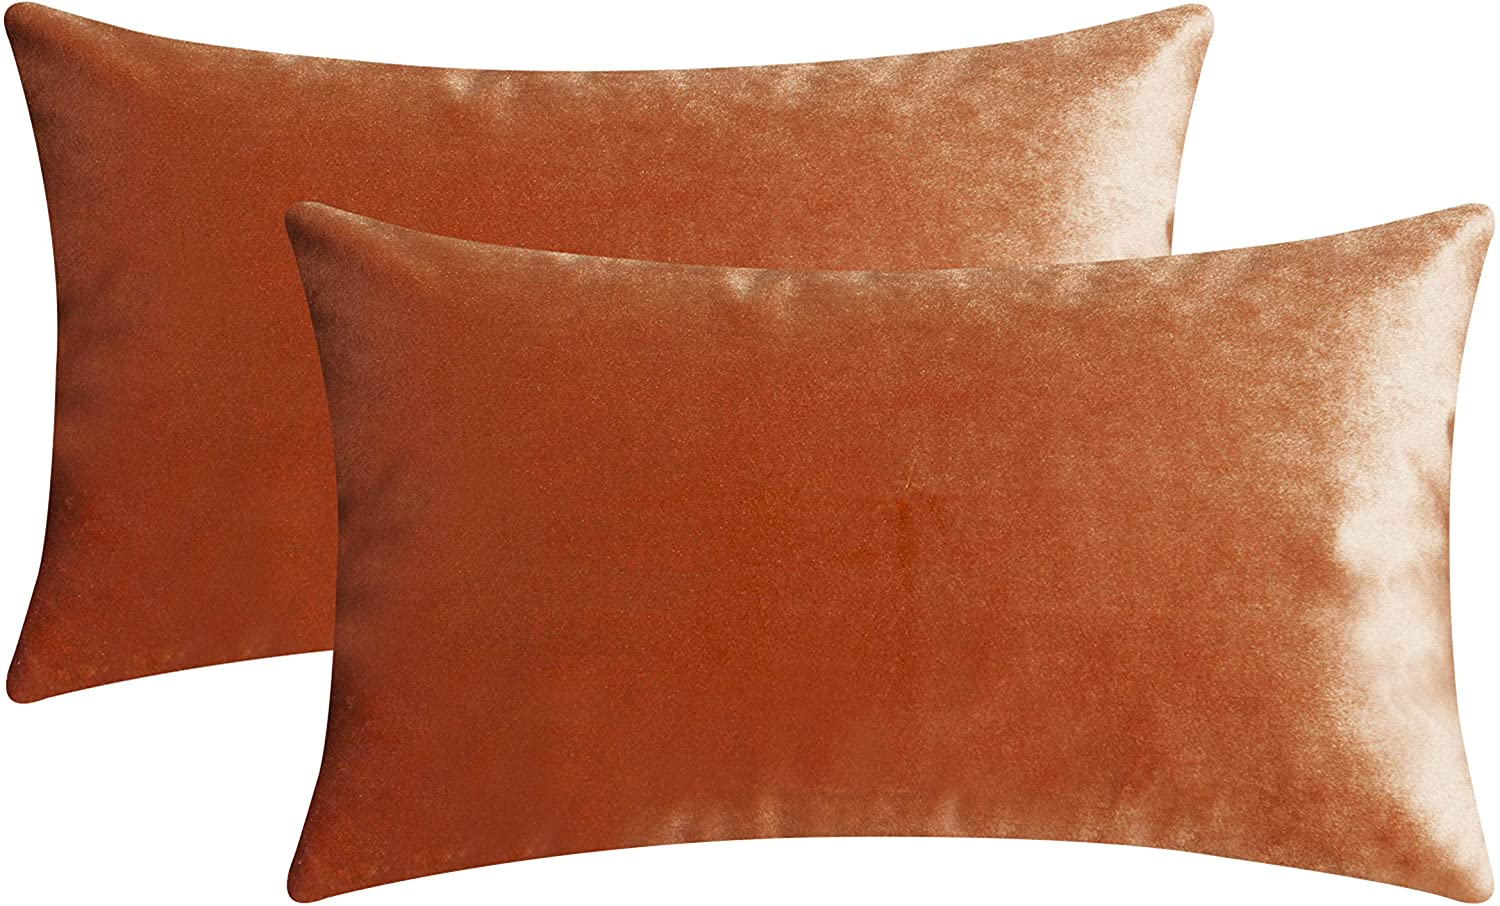 Home Brilliant Velvet Oblong Cushion Cover Pillowcases Throw Pillow Covers for Office Lounge Nursery, Set of 2, 12 x 20 Inches(30x50cm), Copper